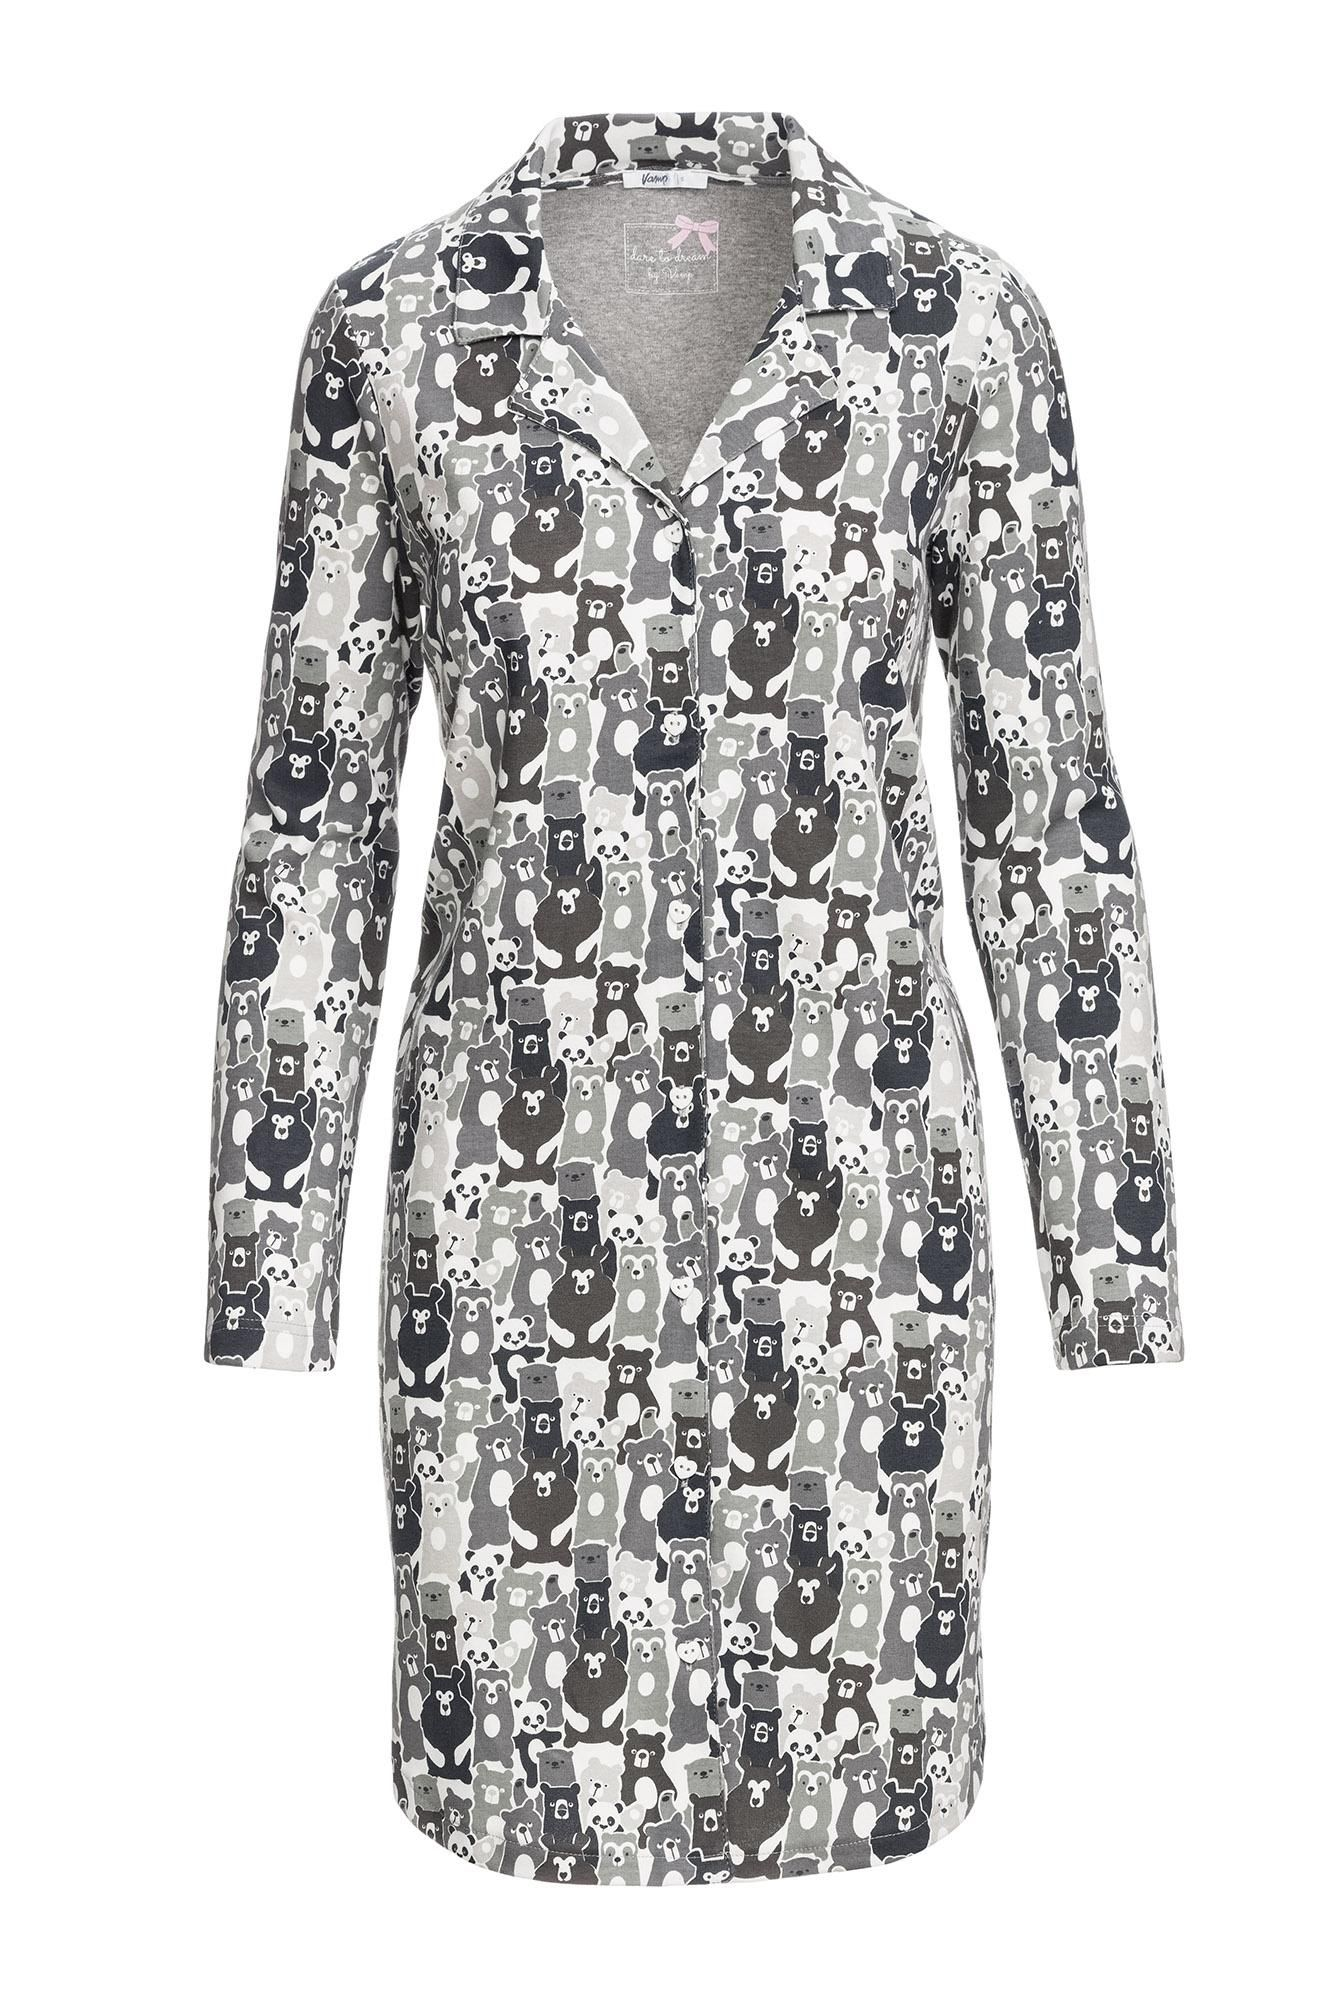 Women's Buttoned Nightgown